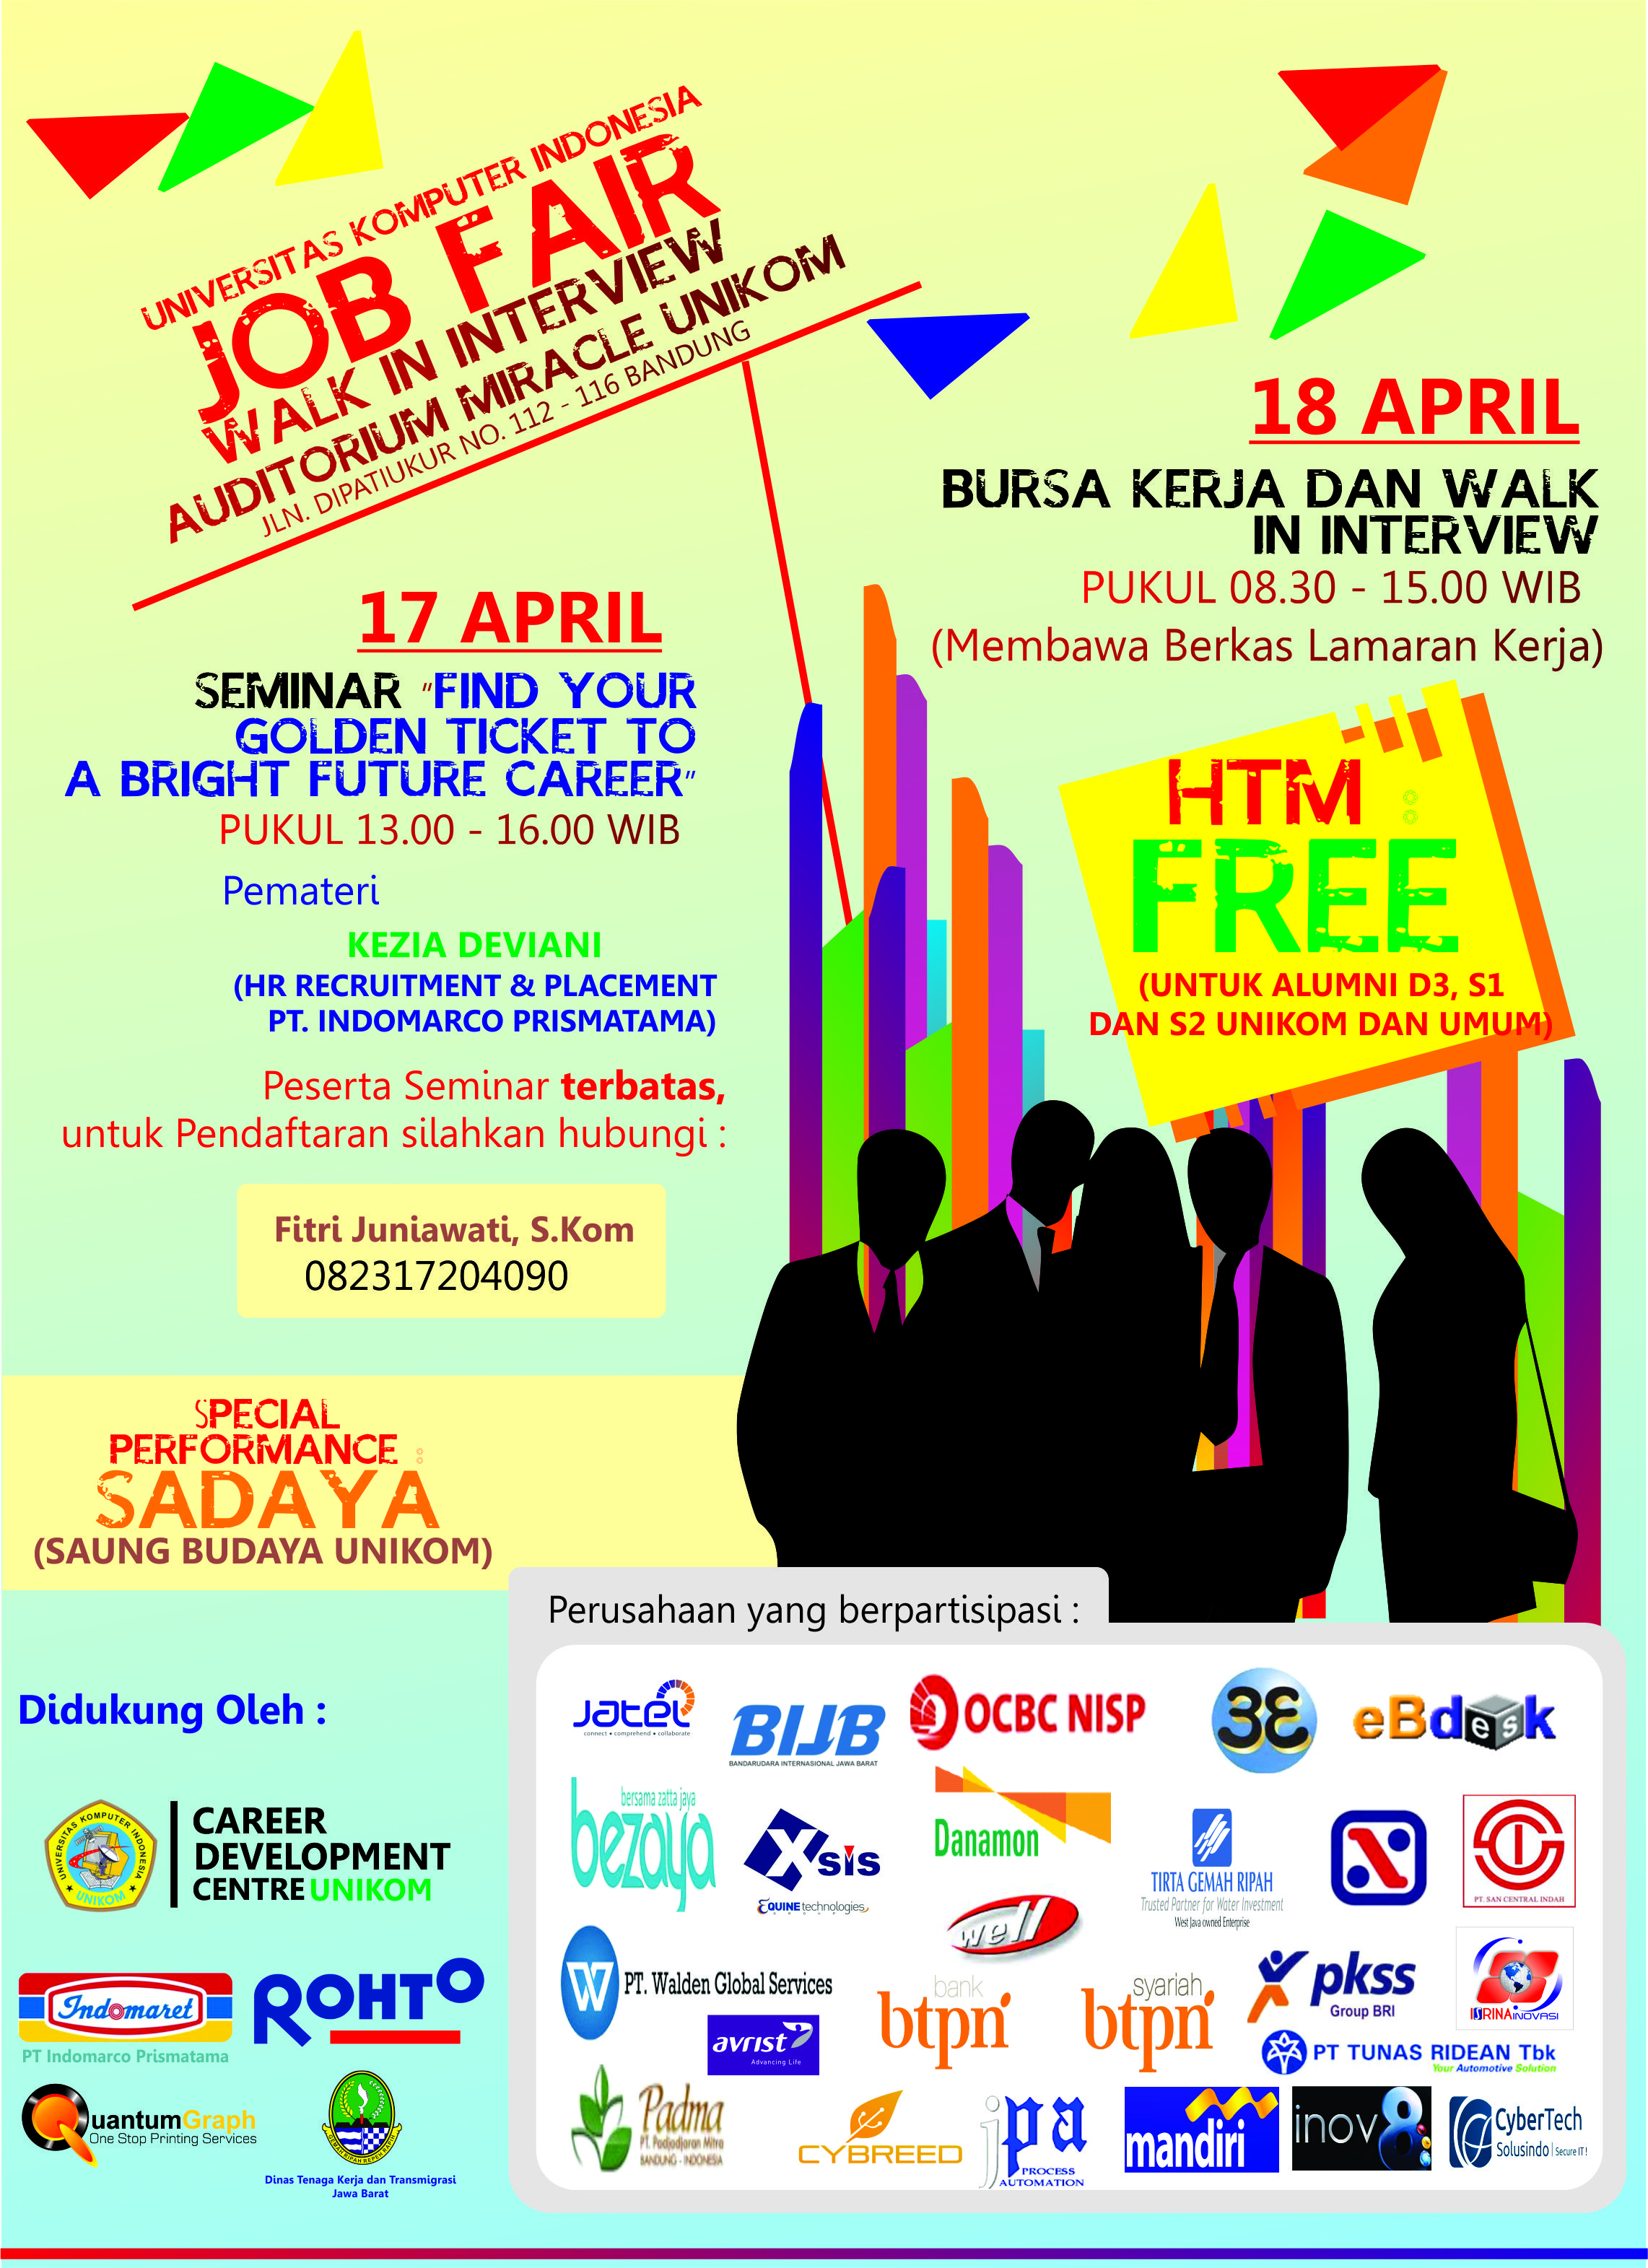 poster-bursa-kerja-18-april-2015.jpg